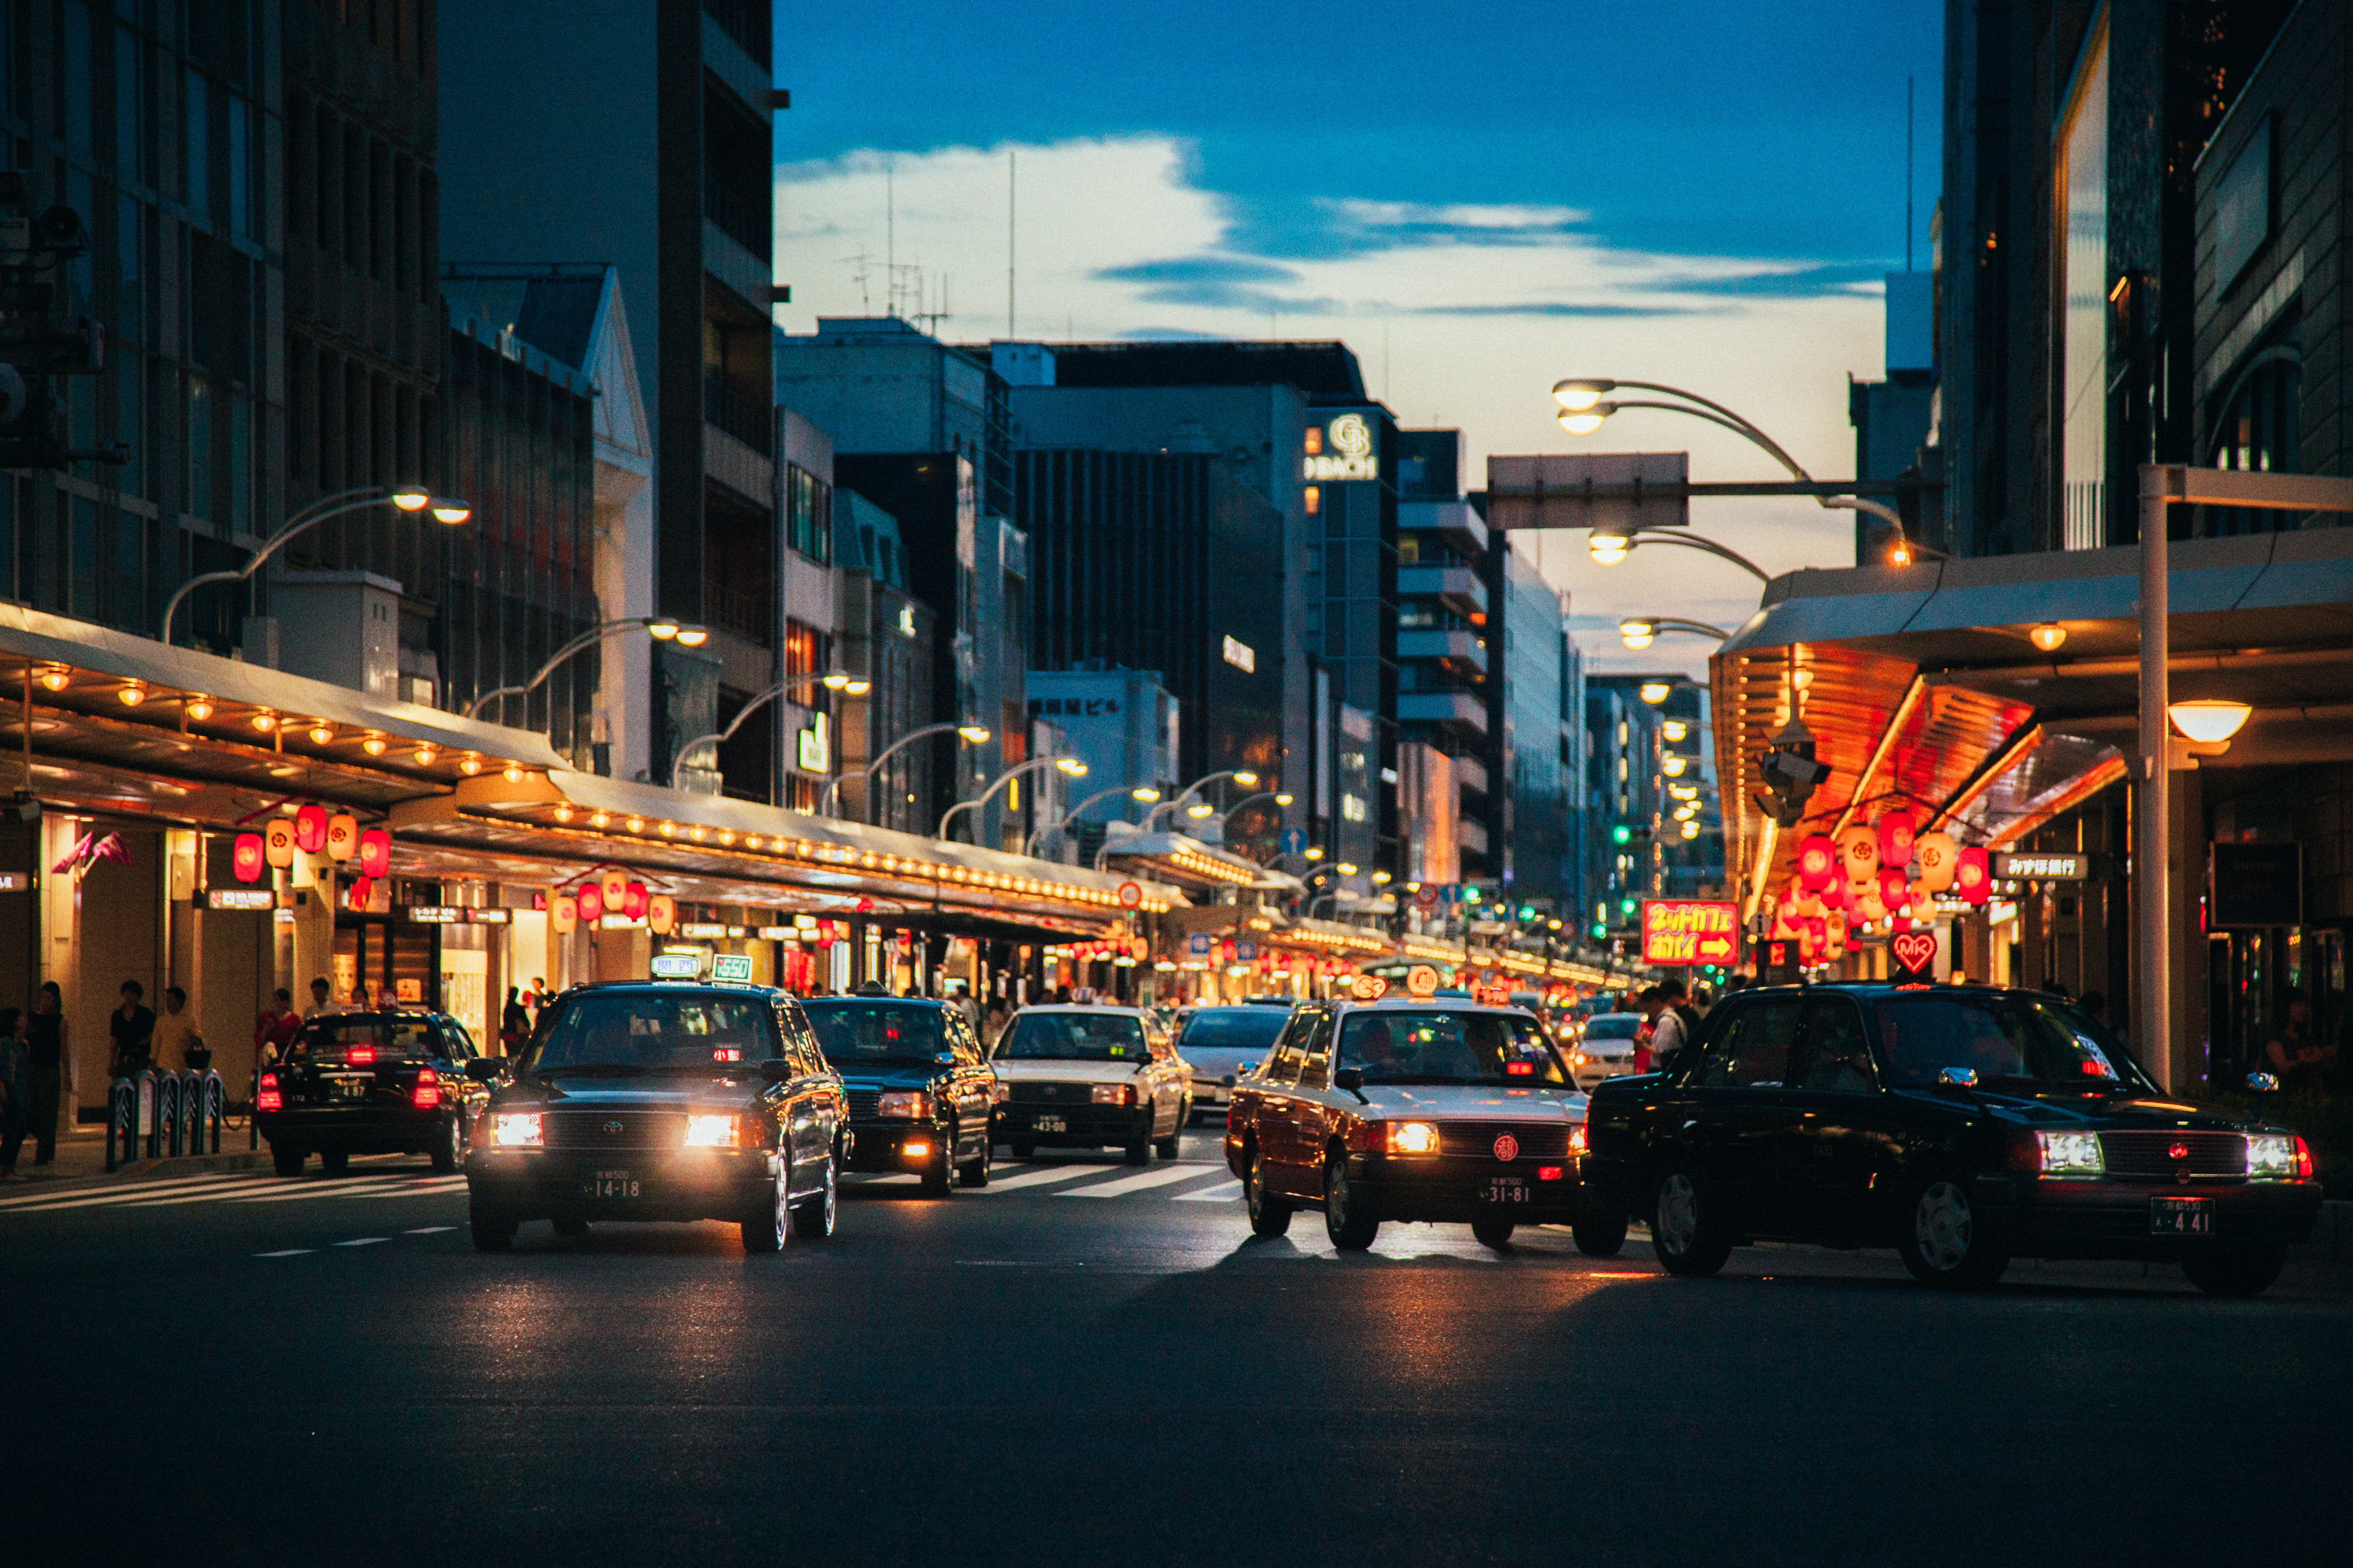 Cars in a busy street illuminated by lights from stores and bars in Kyoto